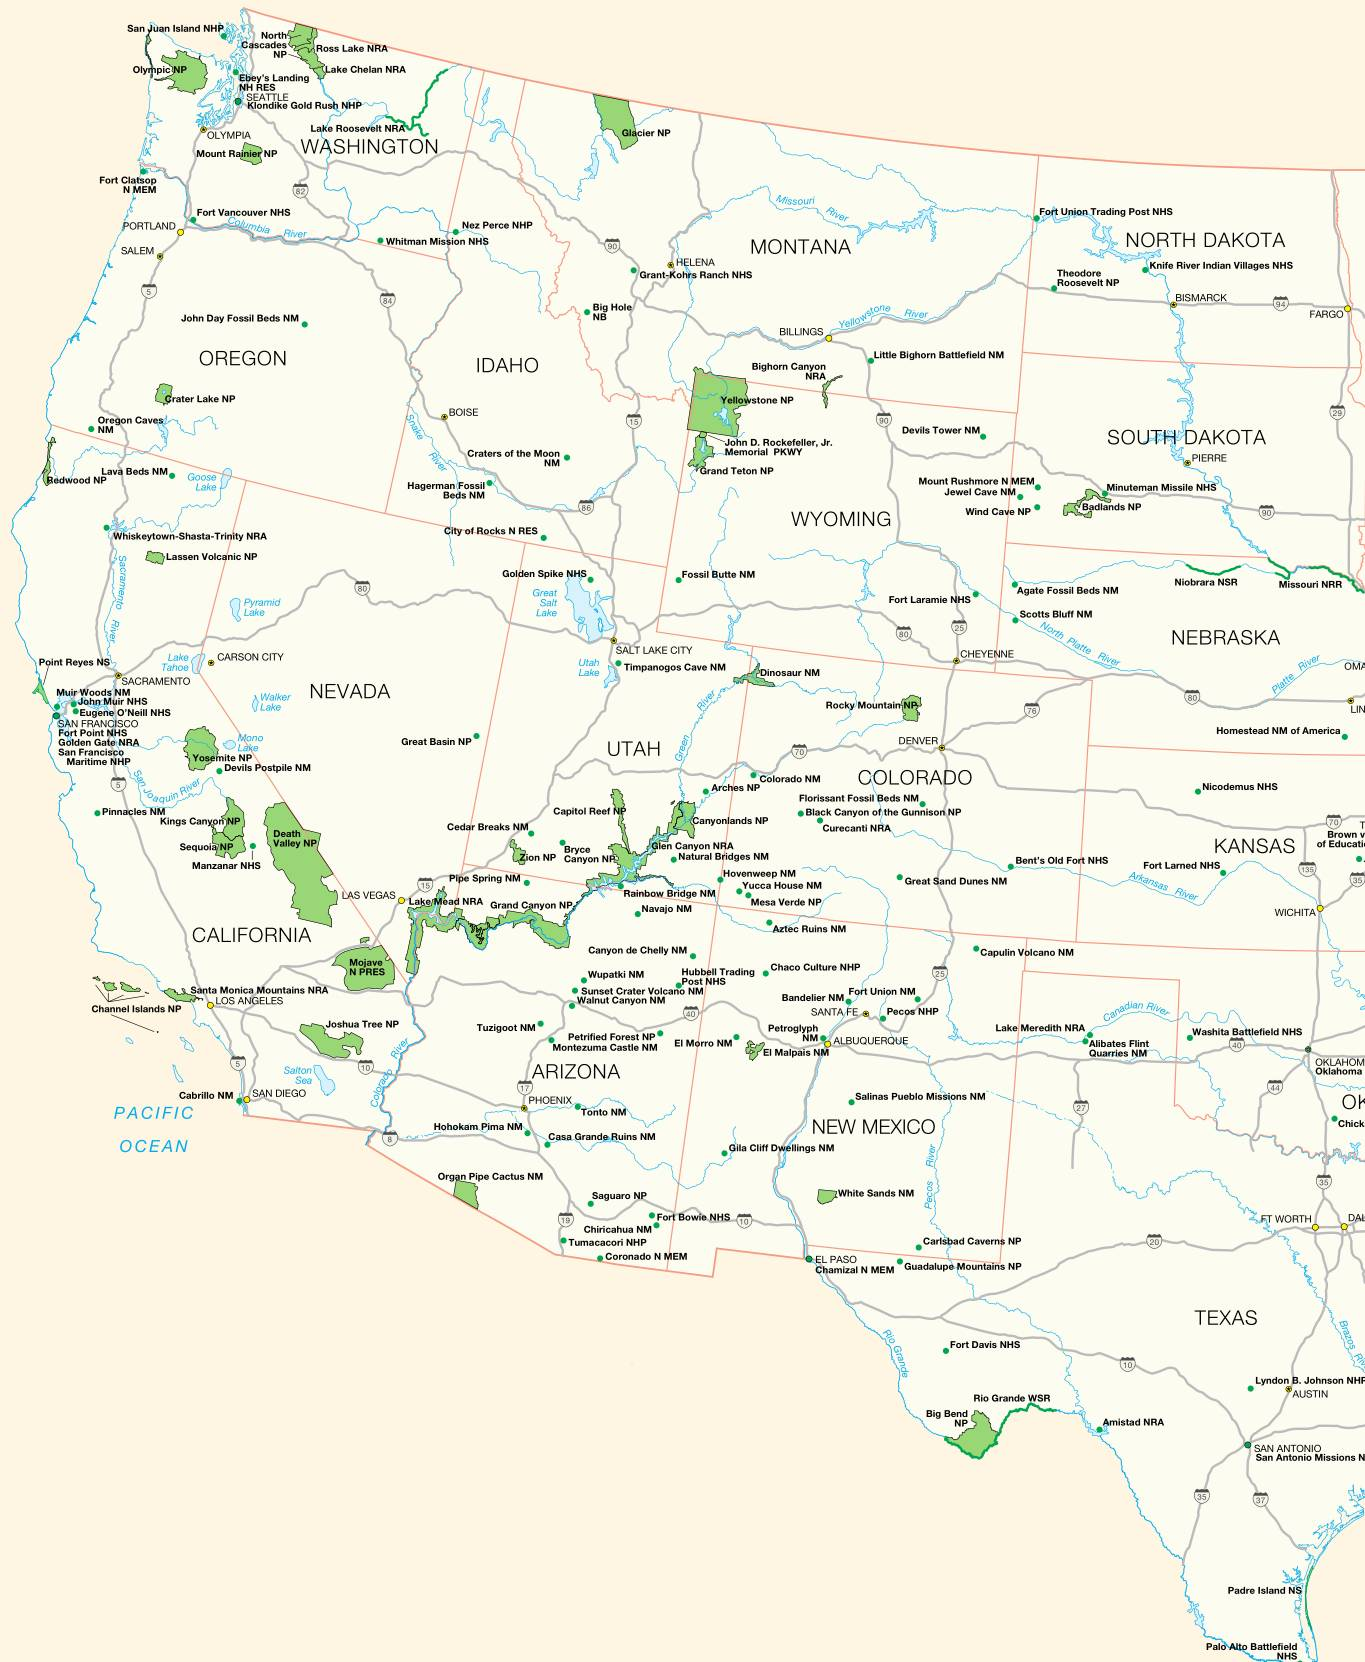 arizona colorado map with Parcs Nationaux Americains on Regions furthermore 25 Best Places To Visit In Colorado besides 8623641157 together with Ukraine Presidential Election 2004 additionally Bodie School l.